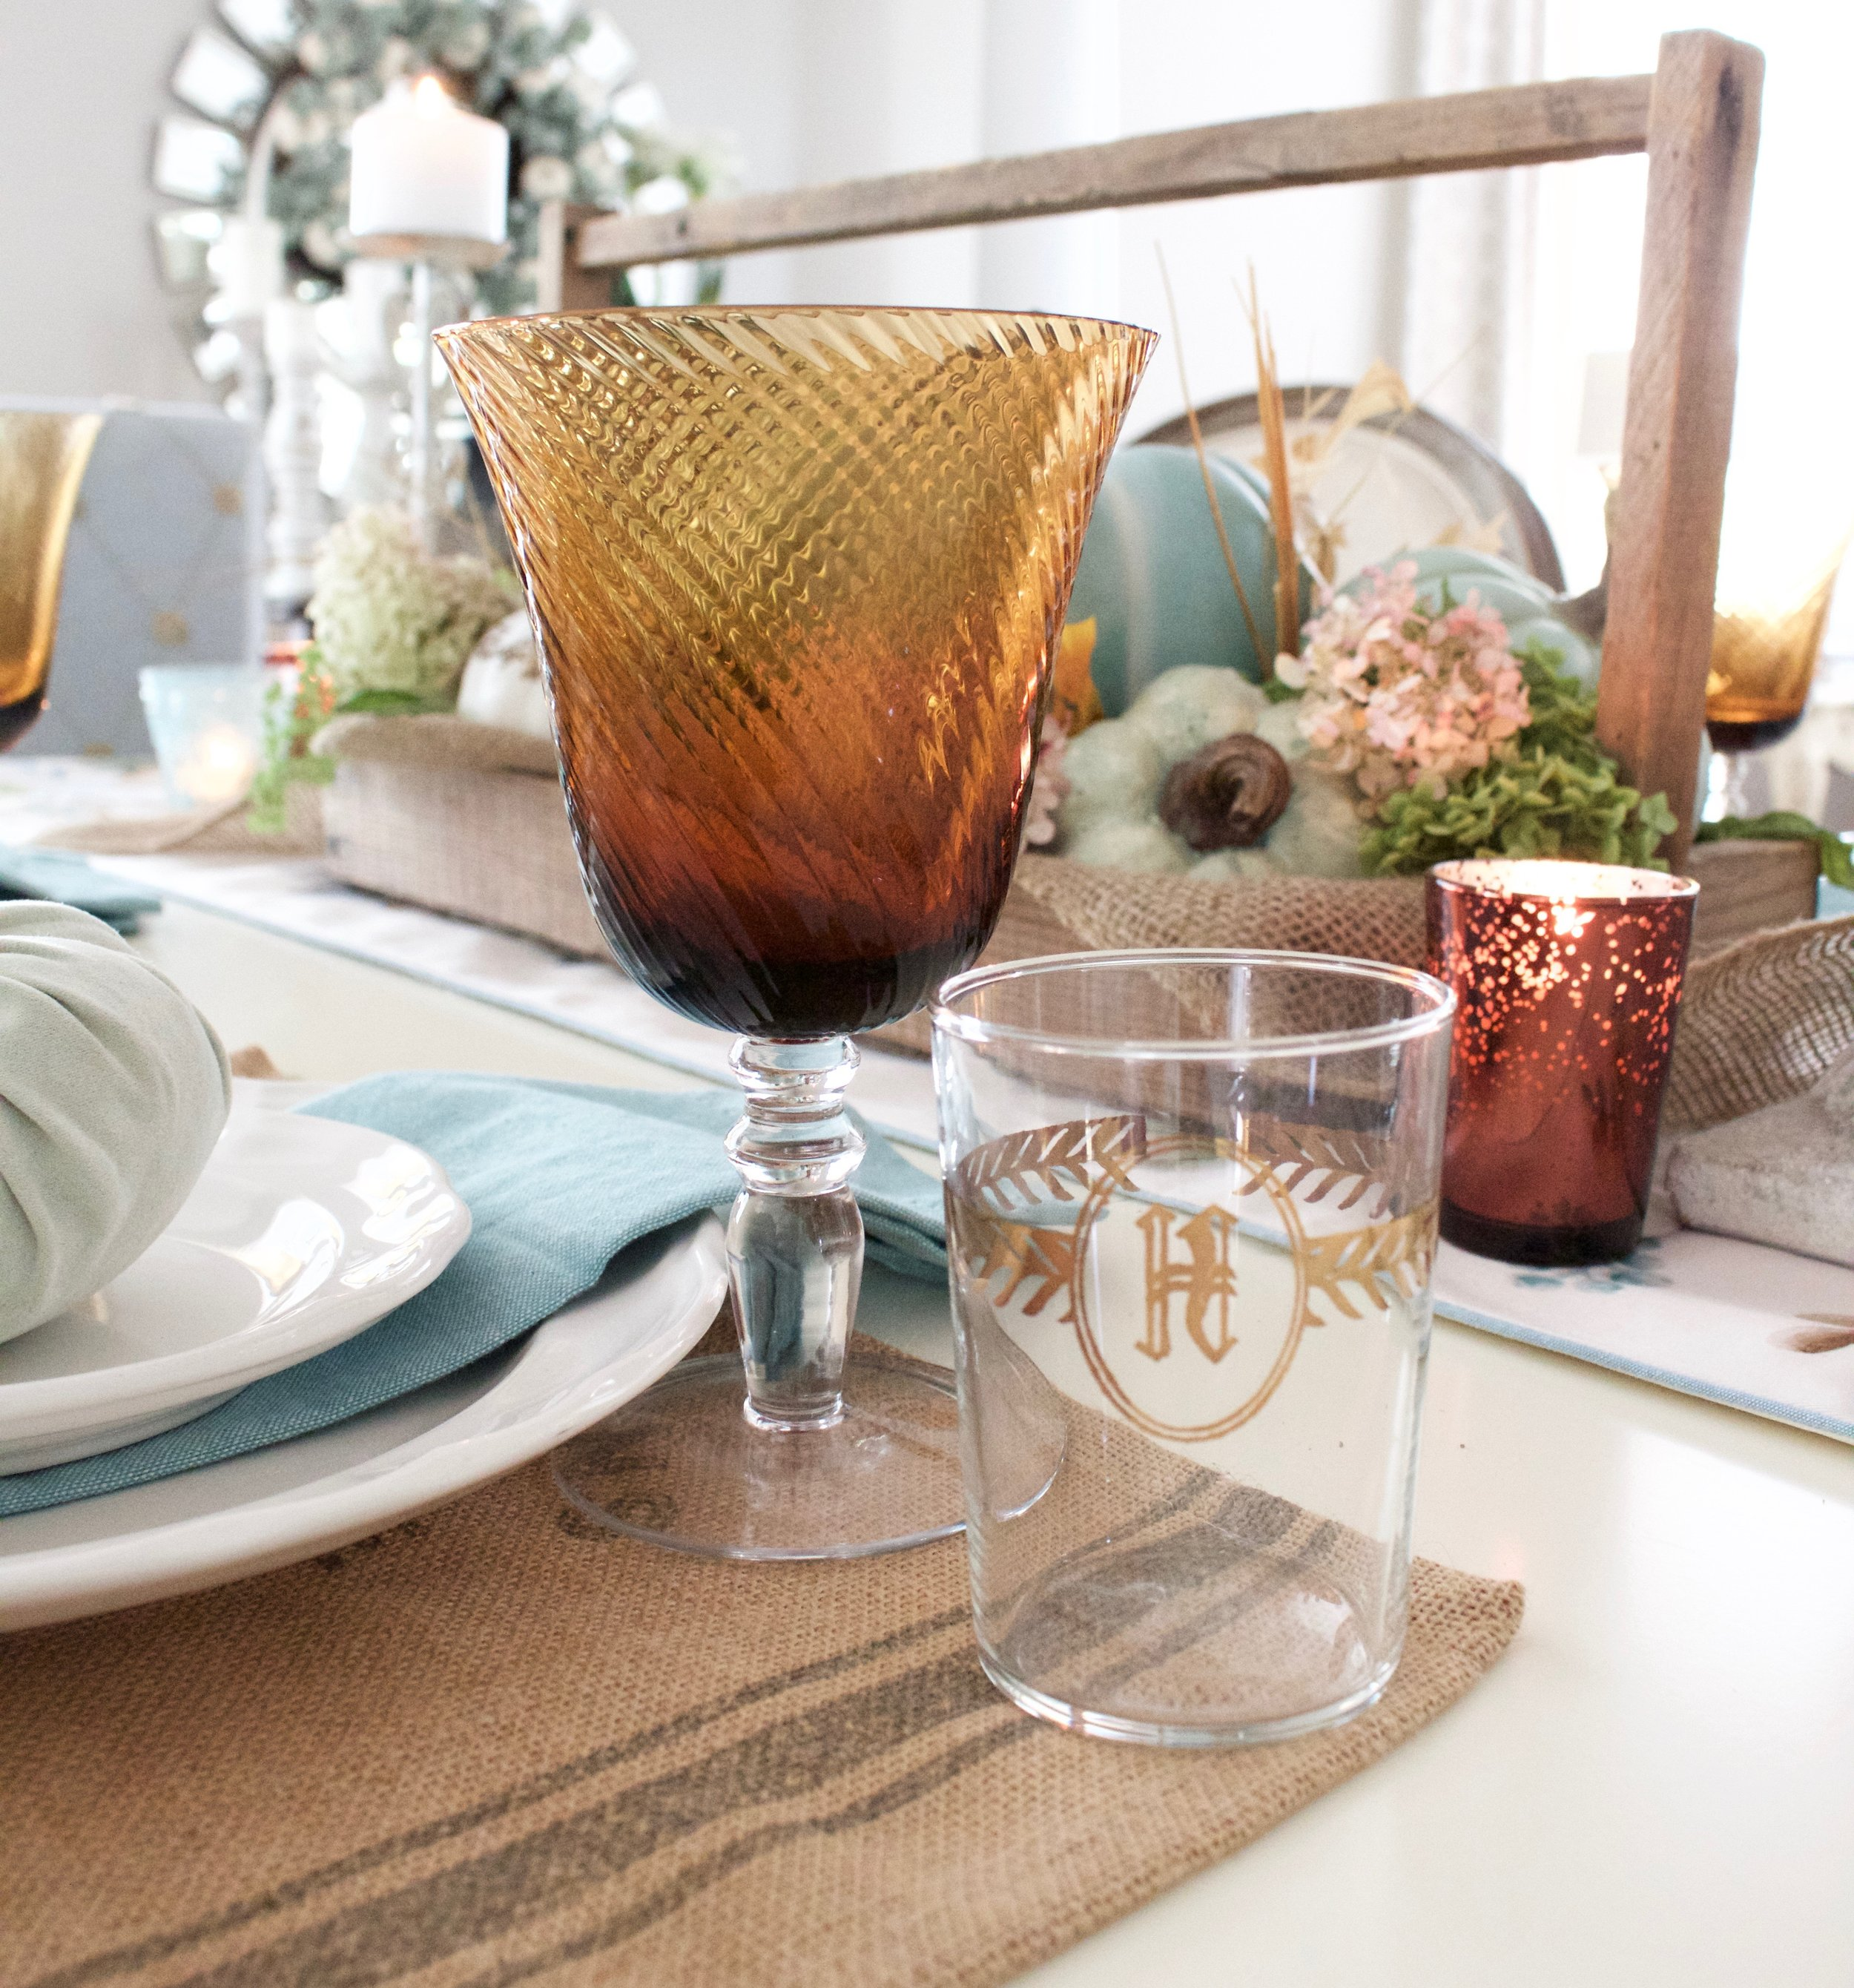 How To Use Blue in Fall Decor | A Farmhouse Tablescape